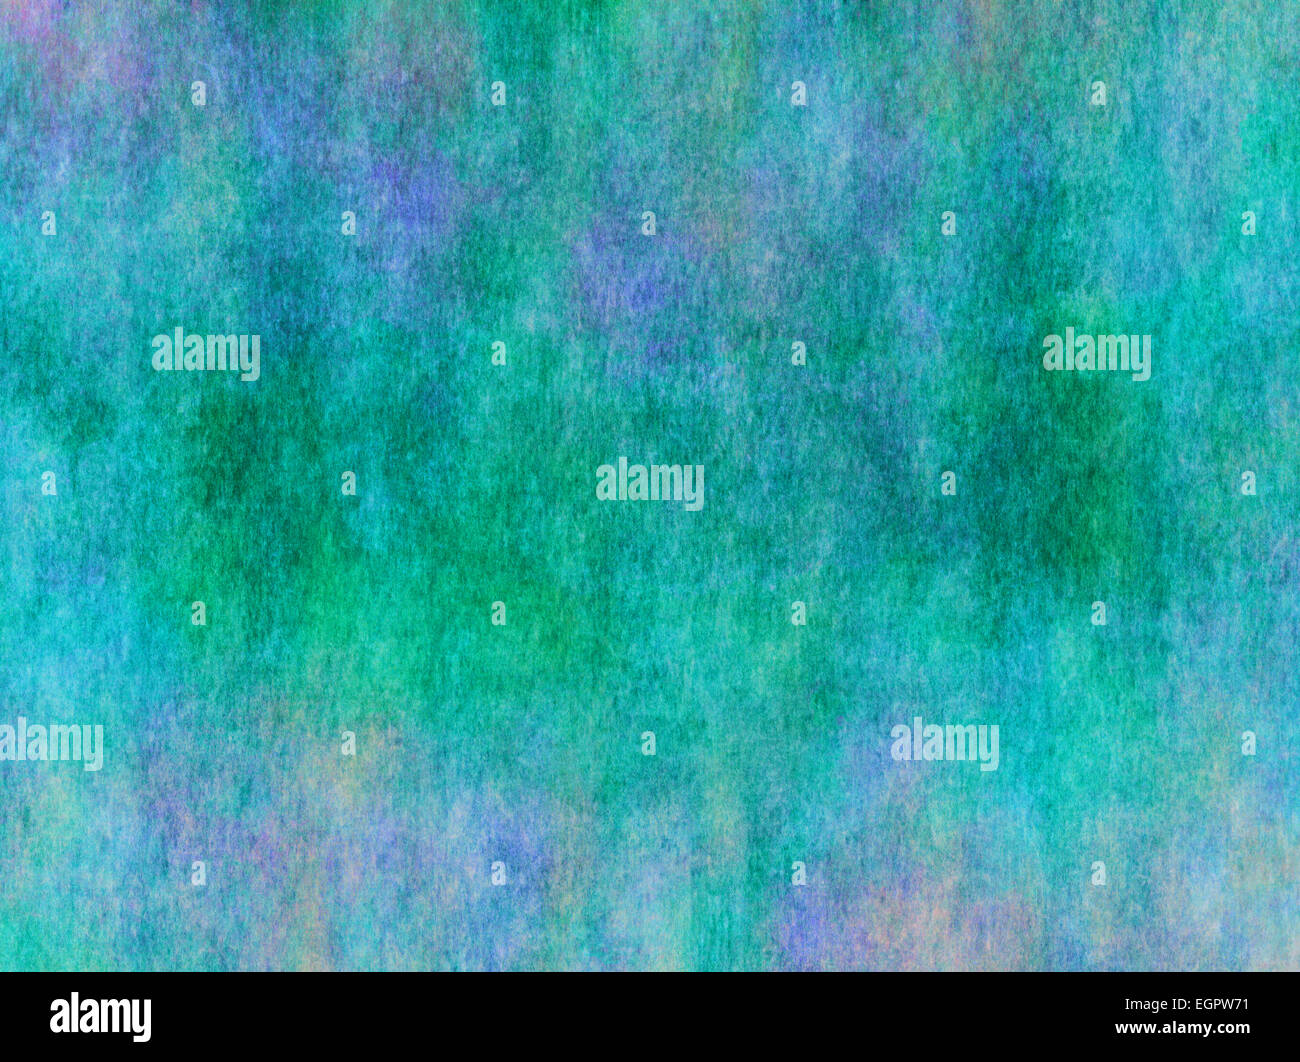 The Texture Of Teal And Turquoise: Teal Aqua Blue Purple Watercolor Paper Colorful Texture